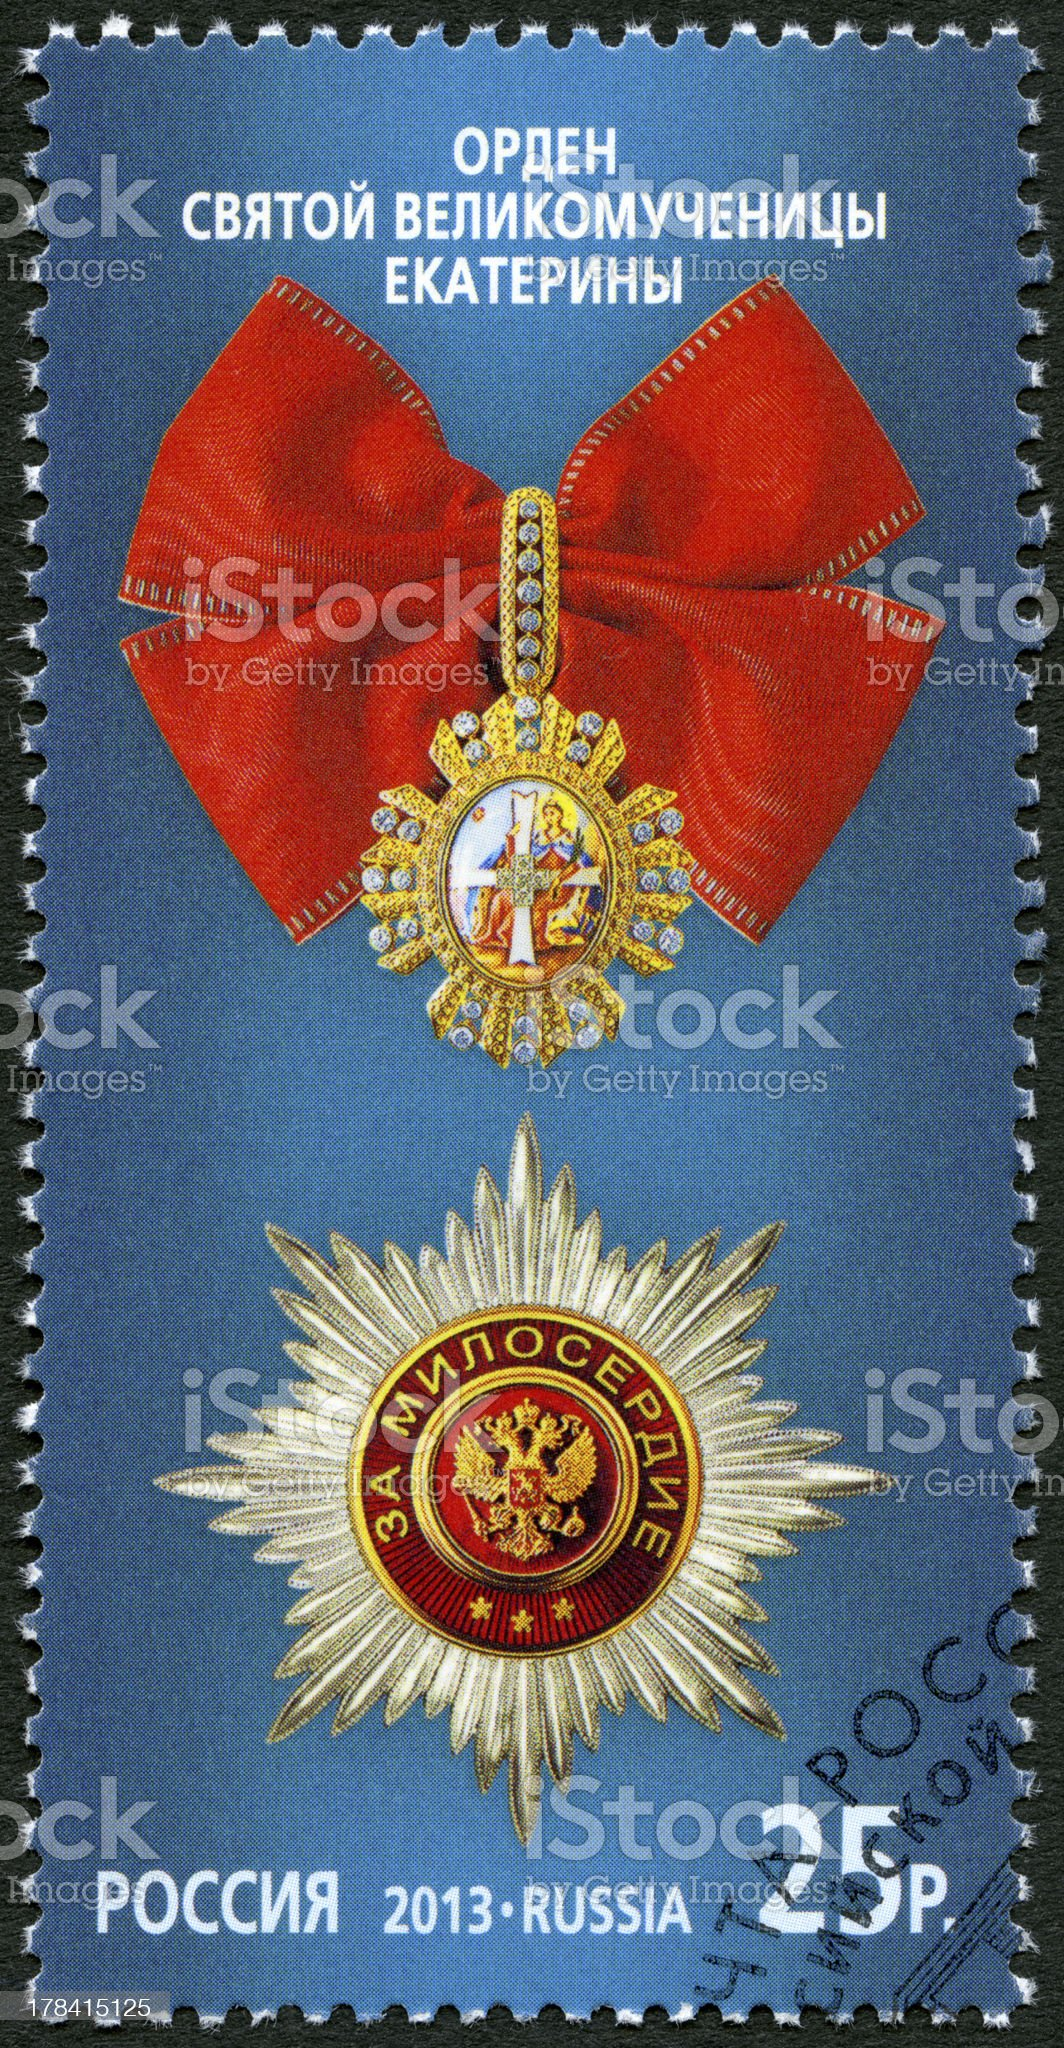 Postage stamp Russia 2013 Order of Saint Catherine Great Martyr royalty-free stock photo